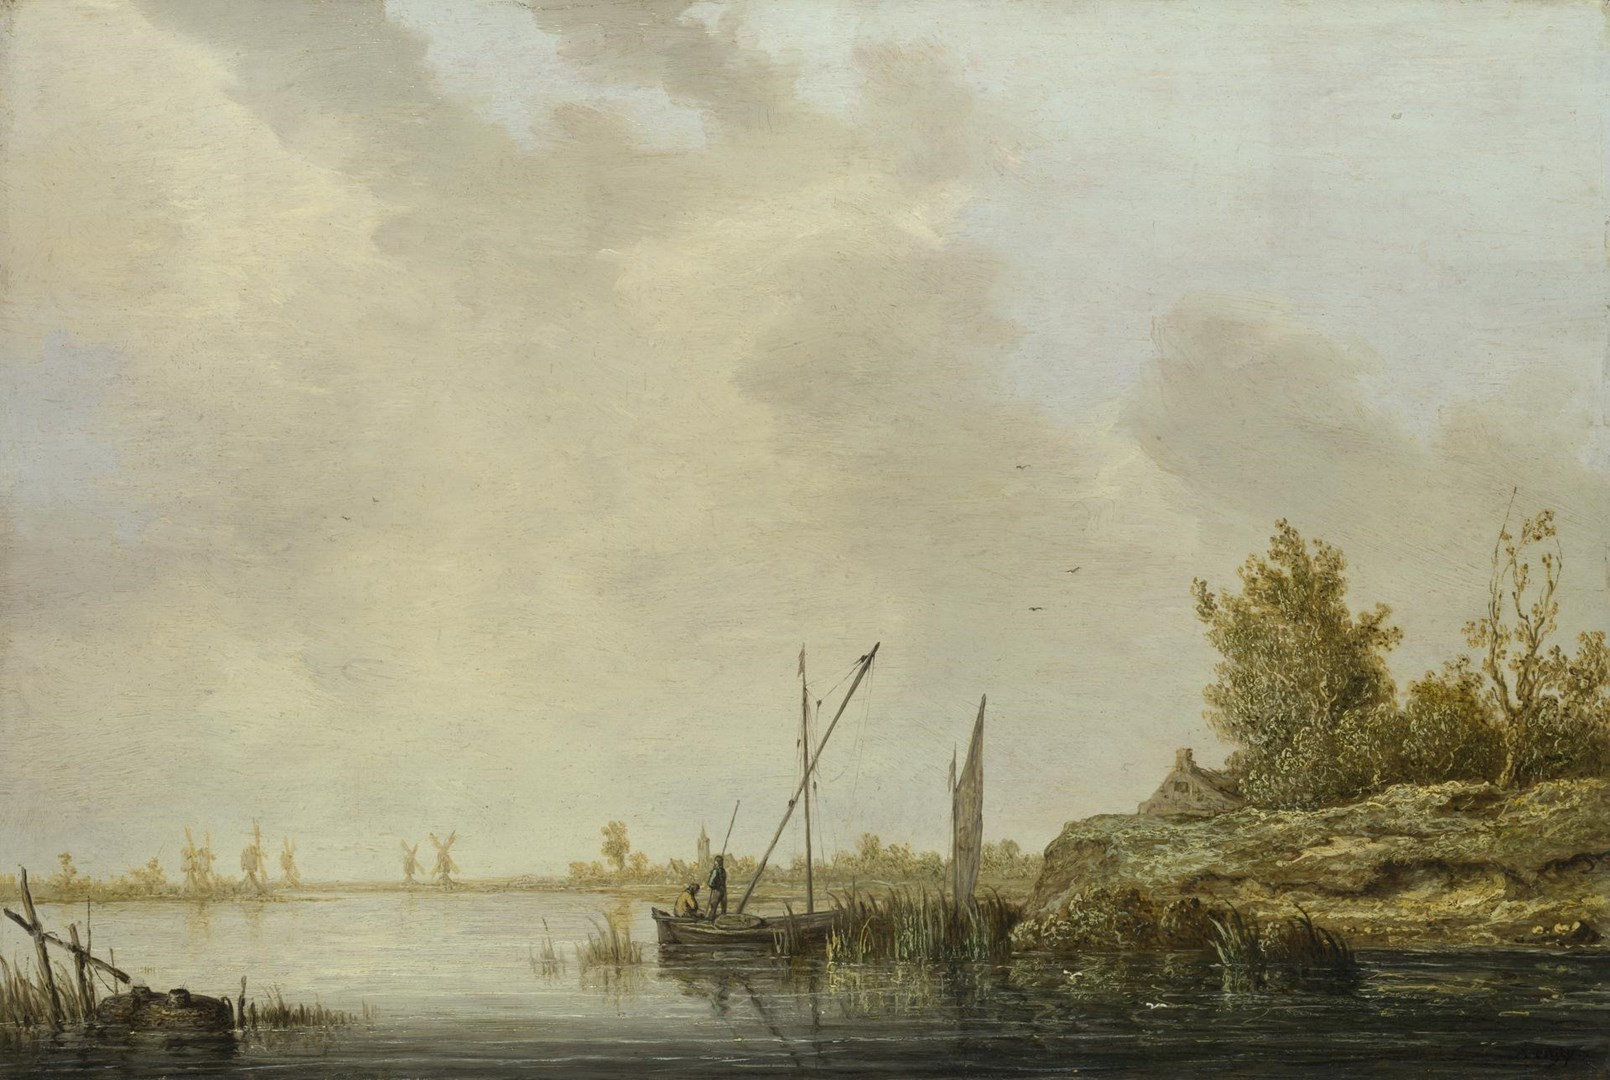 A River Scene with Distant Windmills by Aelbert Cuyp